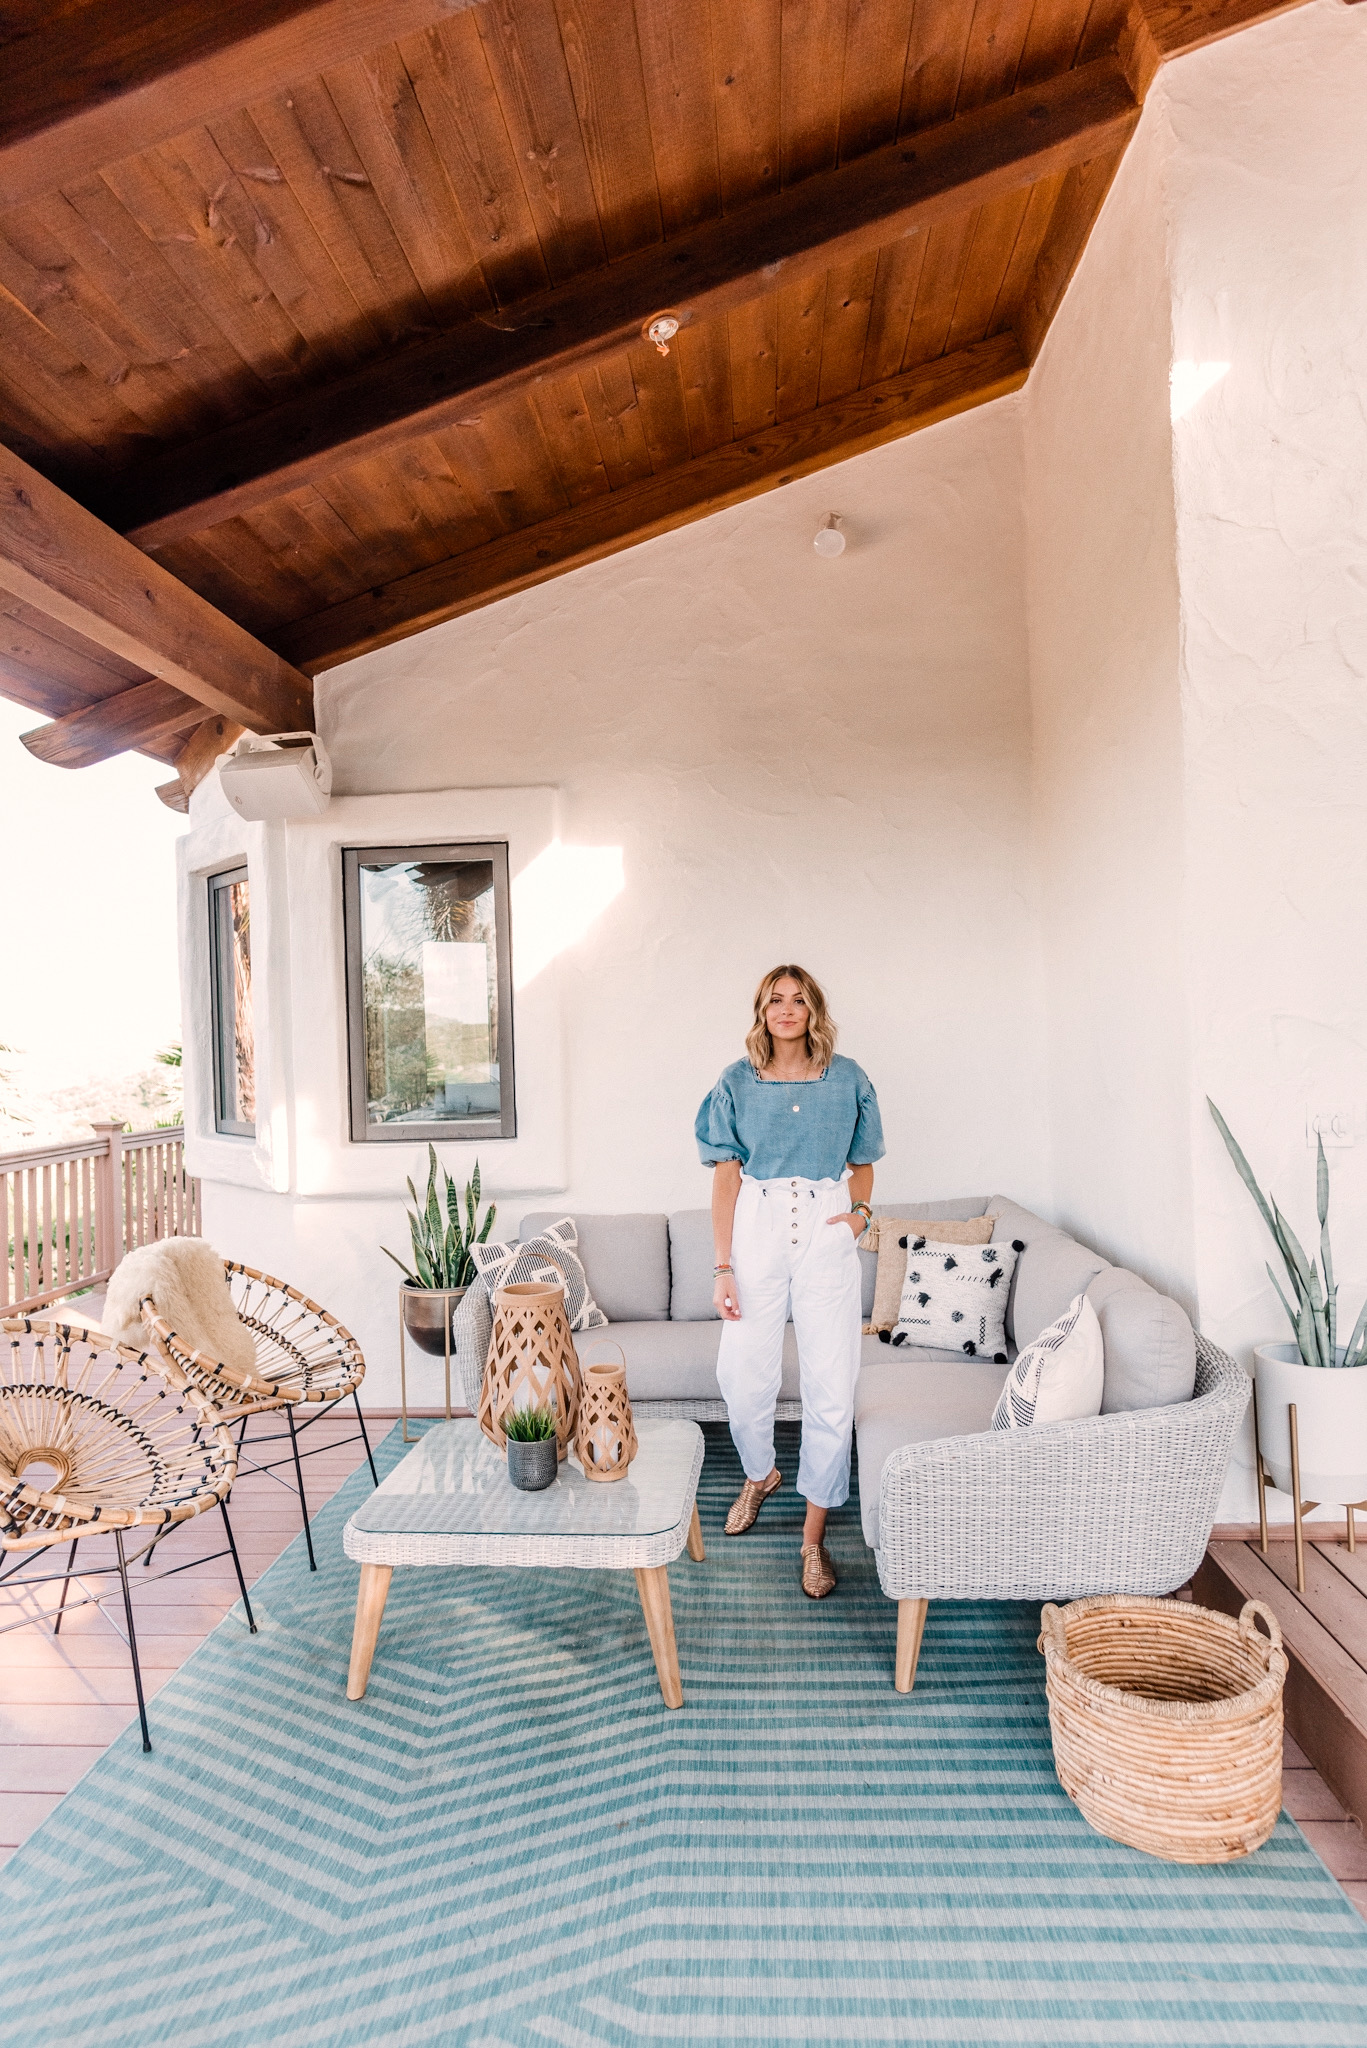 CB2 OUTDOOR DECOR featured by top San Diego lifestyle blogger, Navy Grace. | CB2 Furniture by popular San Diego life and style blog, Navy Grace: image of a woman outside on her patio decorated with a CB2 hurricane lantern, Seminyak Gray Planter, snake tongue plants, blue outdoor rug, woven wicker outdoor couch, woven wicker coffee table, woven basket, and Rattan chairs.